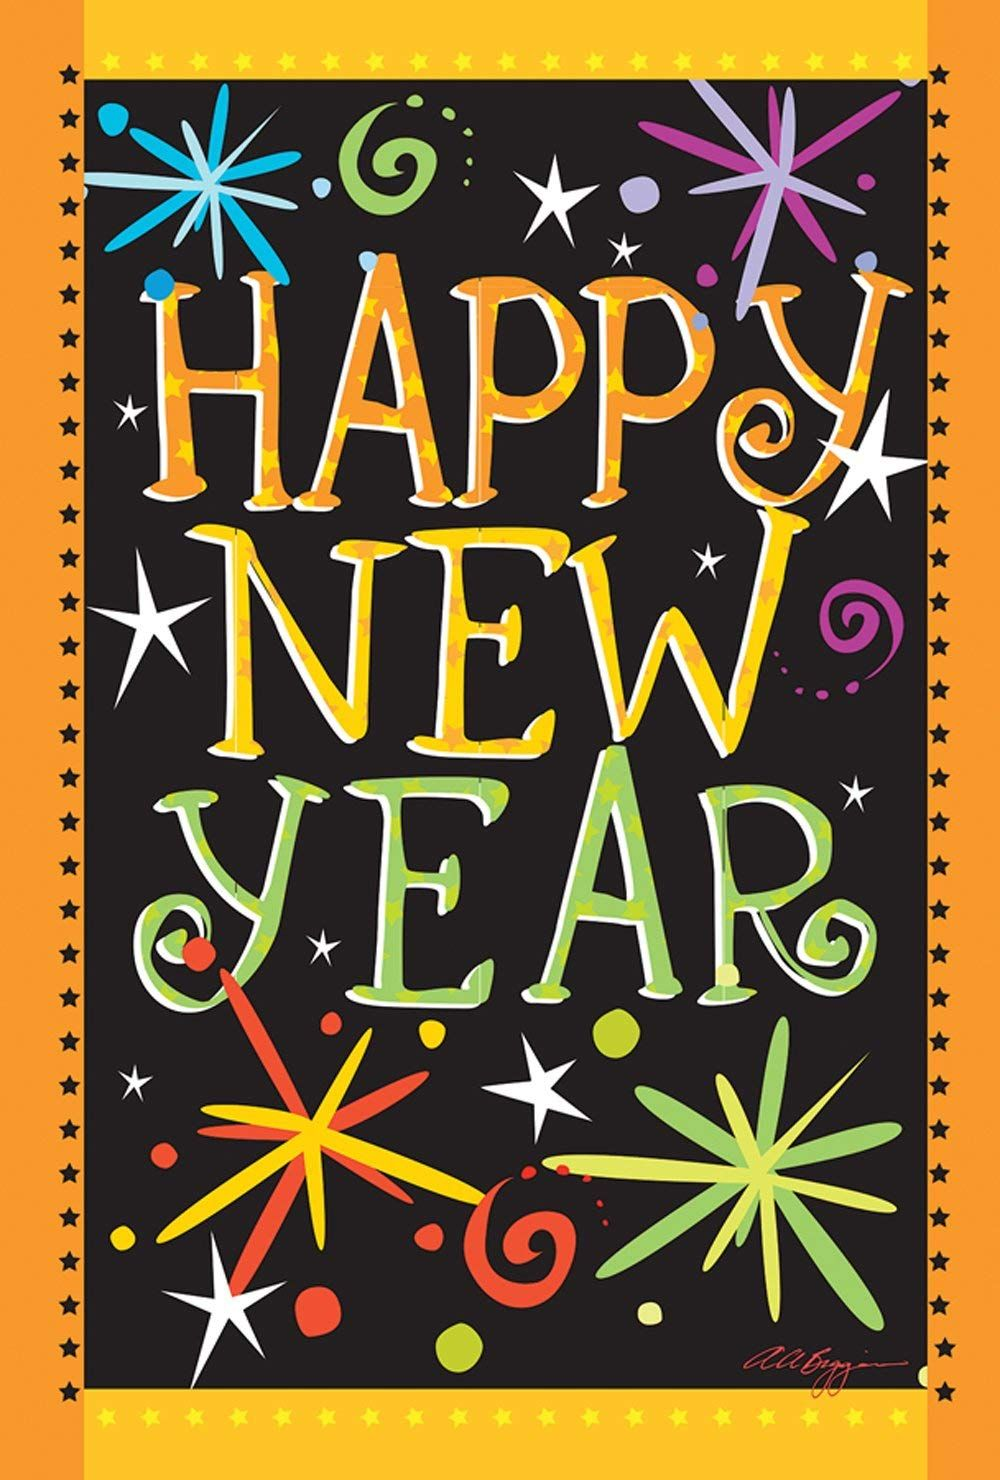 Happy New Year 2020 Quotes, Images, Greetings, Wishes